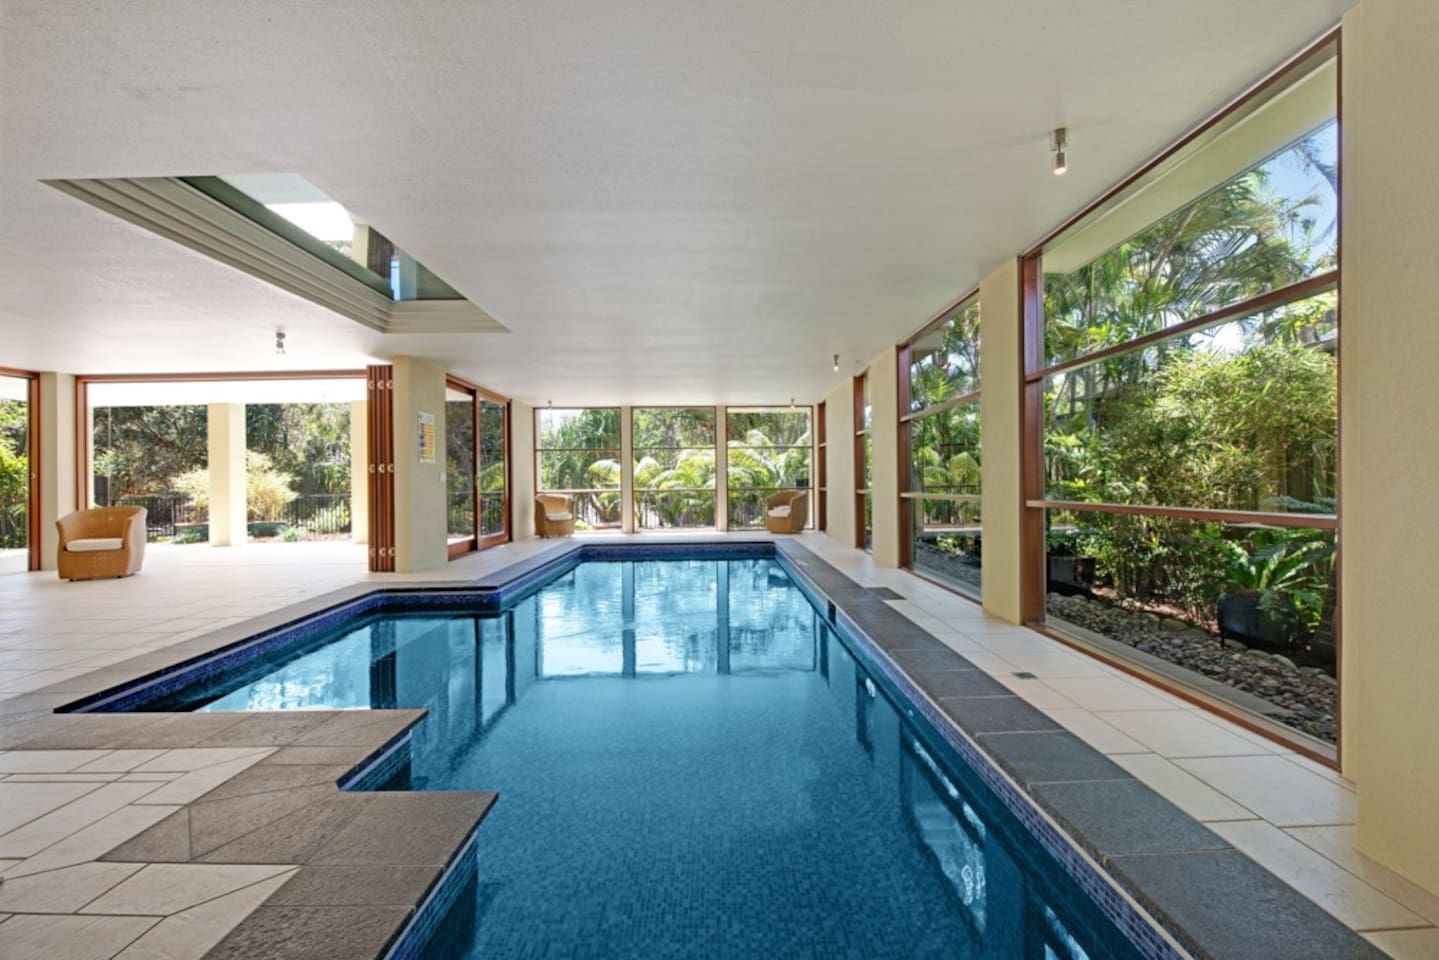 Indoor solar heated 11 metre swimming pool and entertaining area